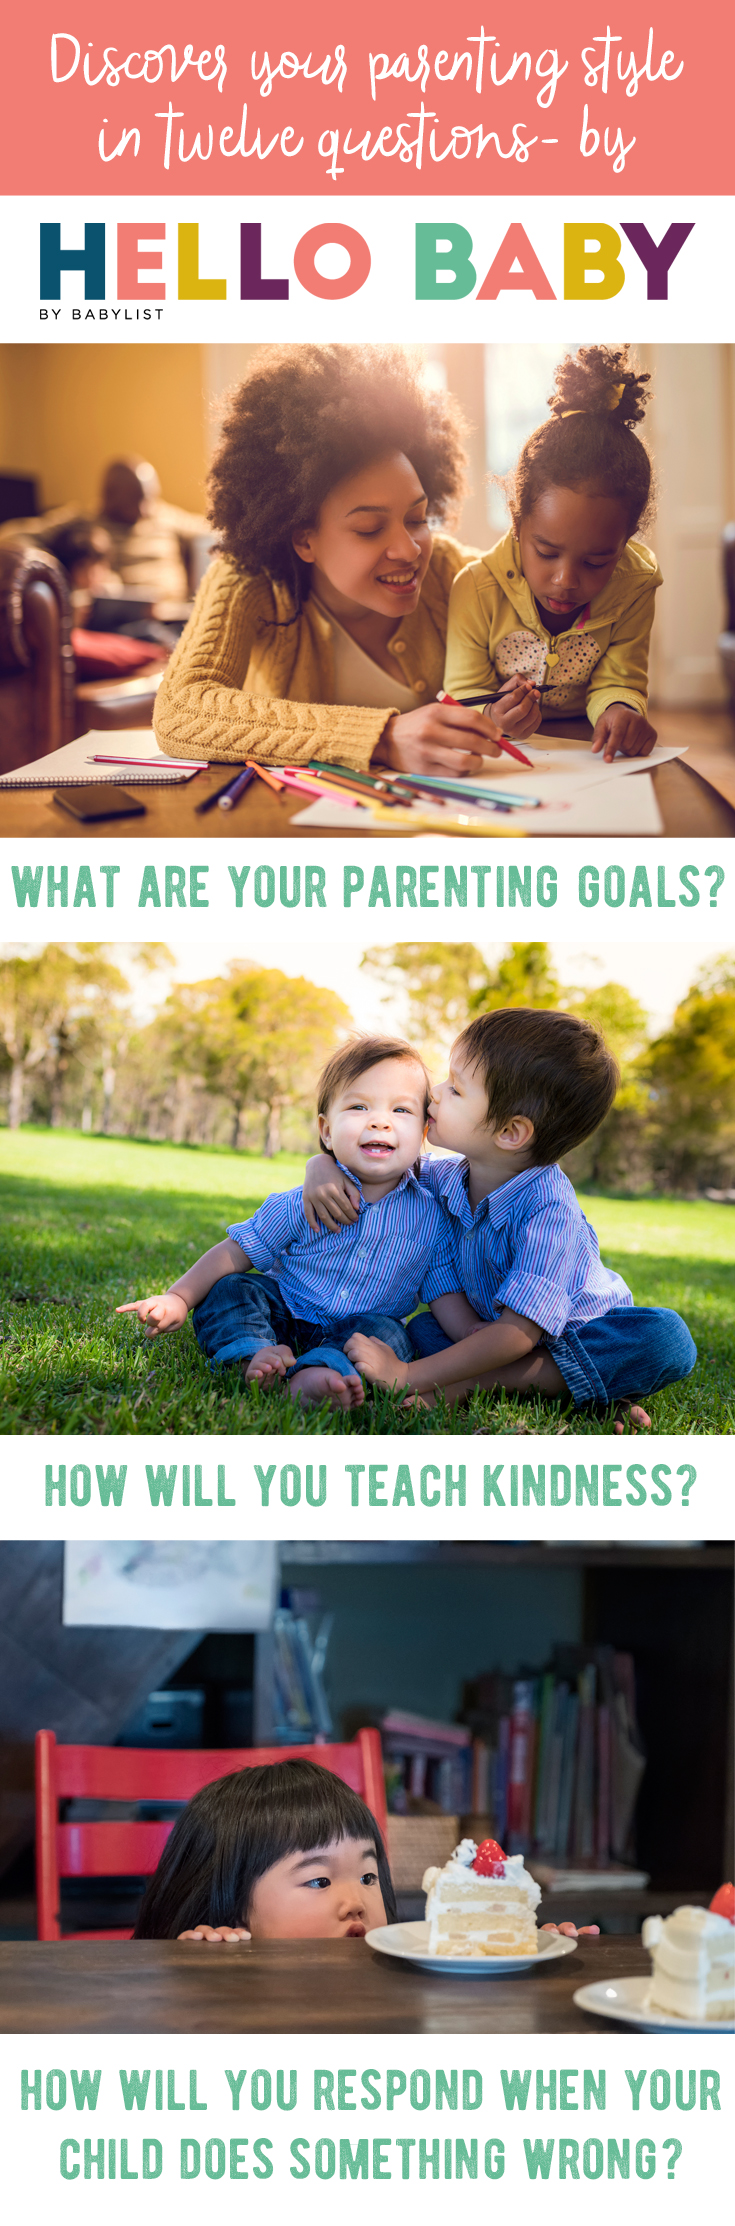 What is good parenting? There's no one right answer, but the questions in this article will help first-time parents think through what kind of parent they aspire to become. Good luck, parents: we believe in you!